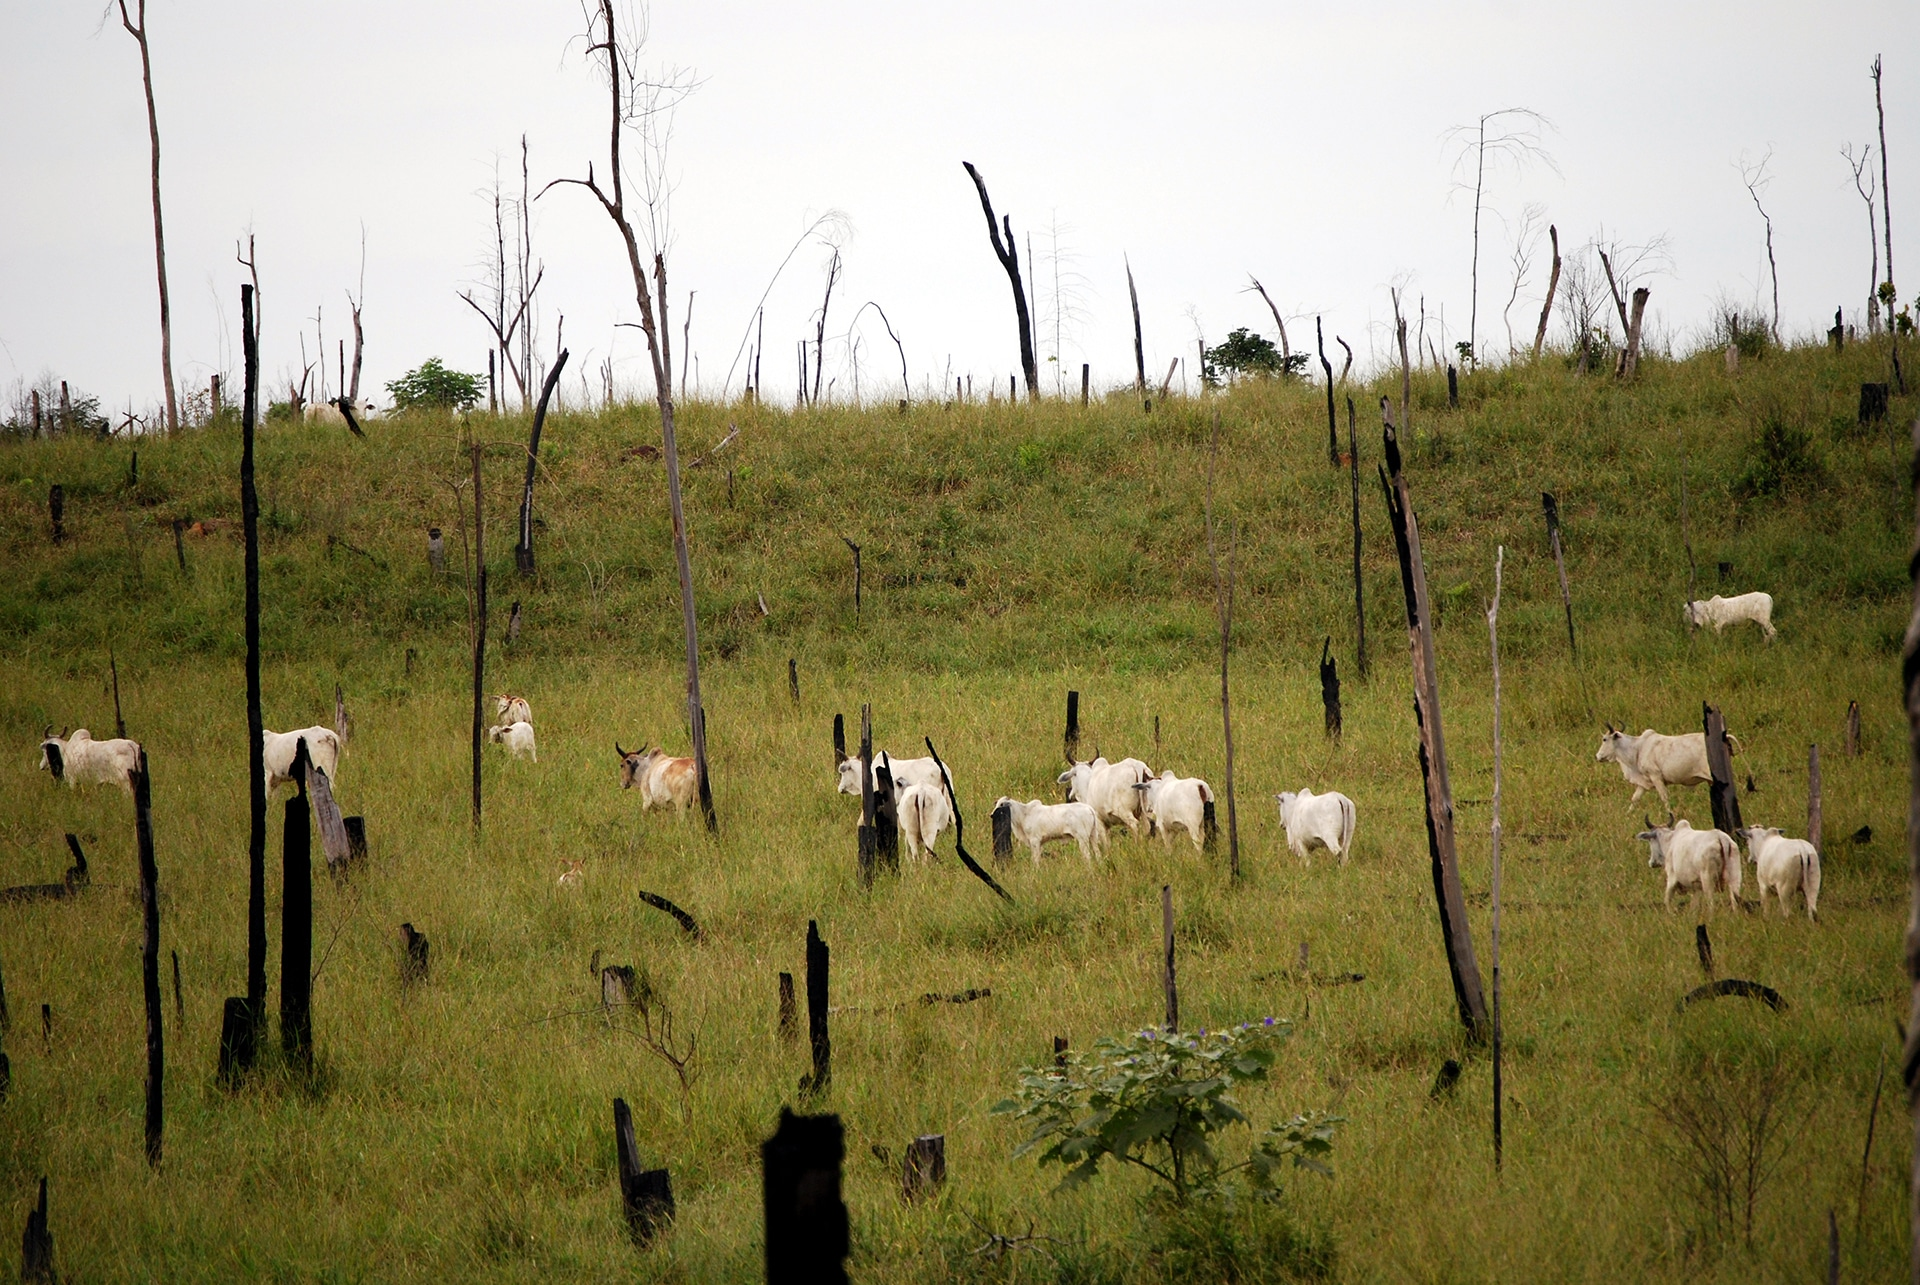 Cattle grazing in deforested Amazon - Veganism & the Environment - Your Daily Vegan